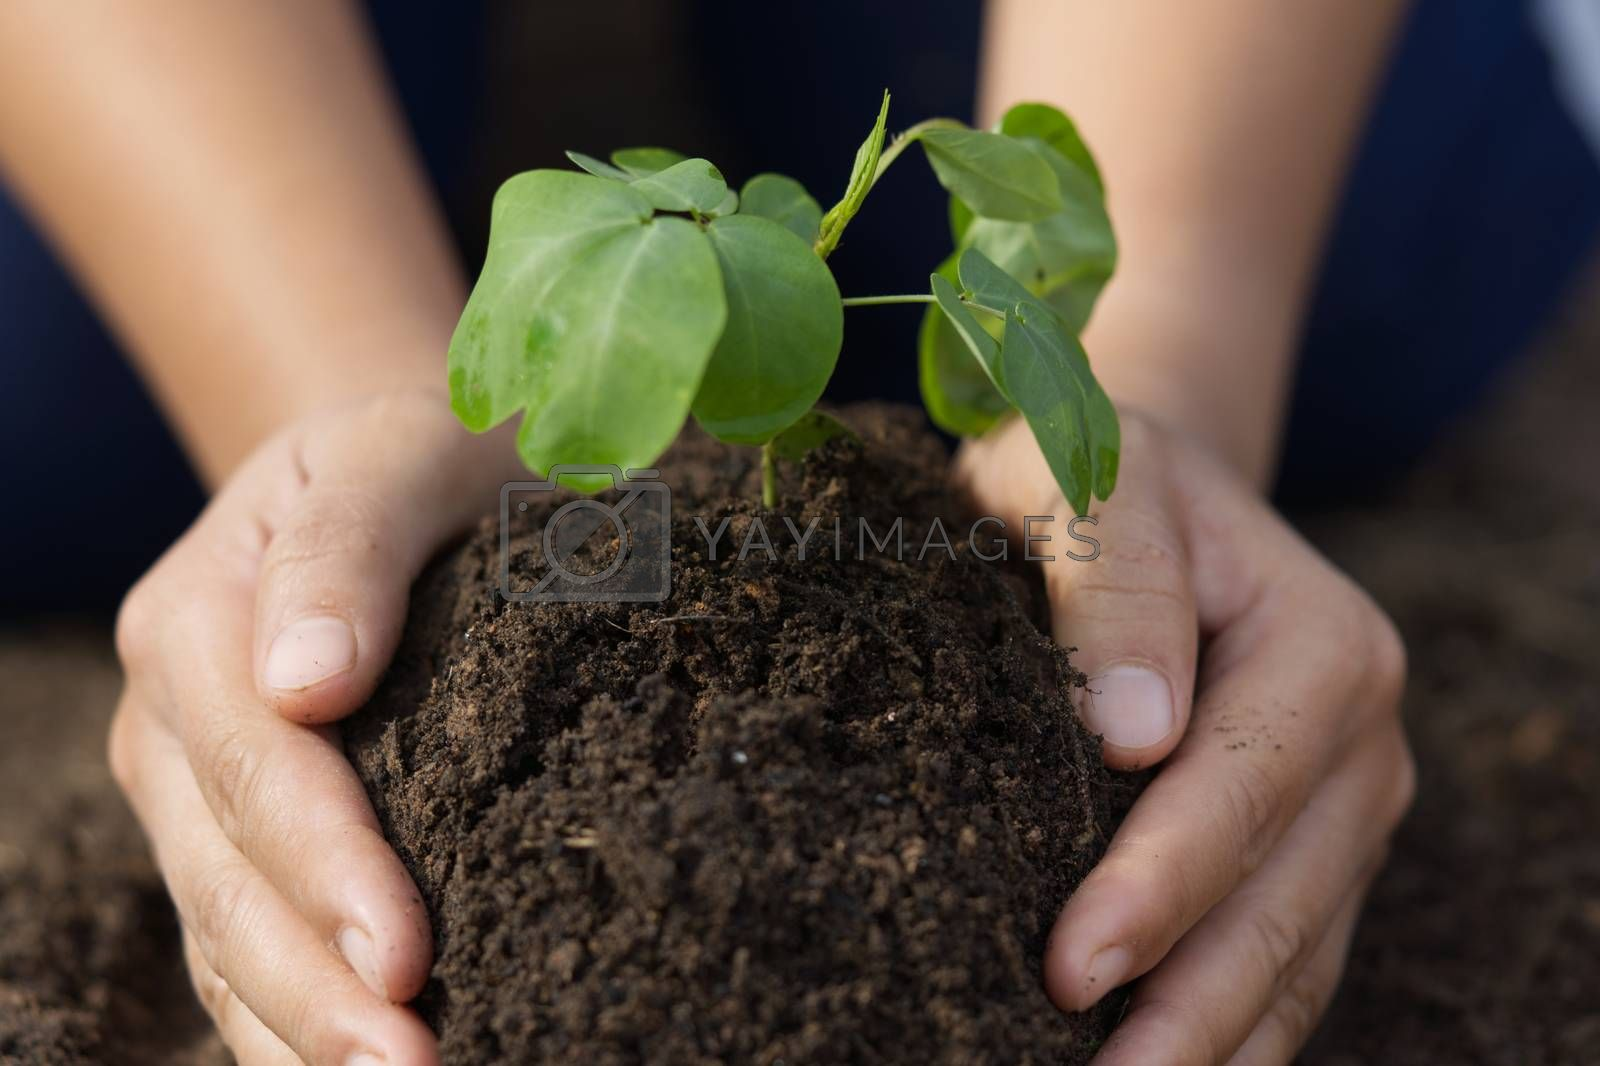 Planting trees with 2 hands.